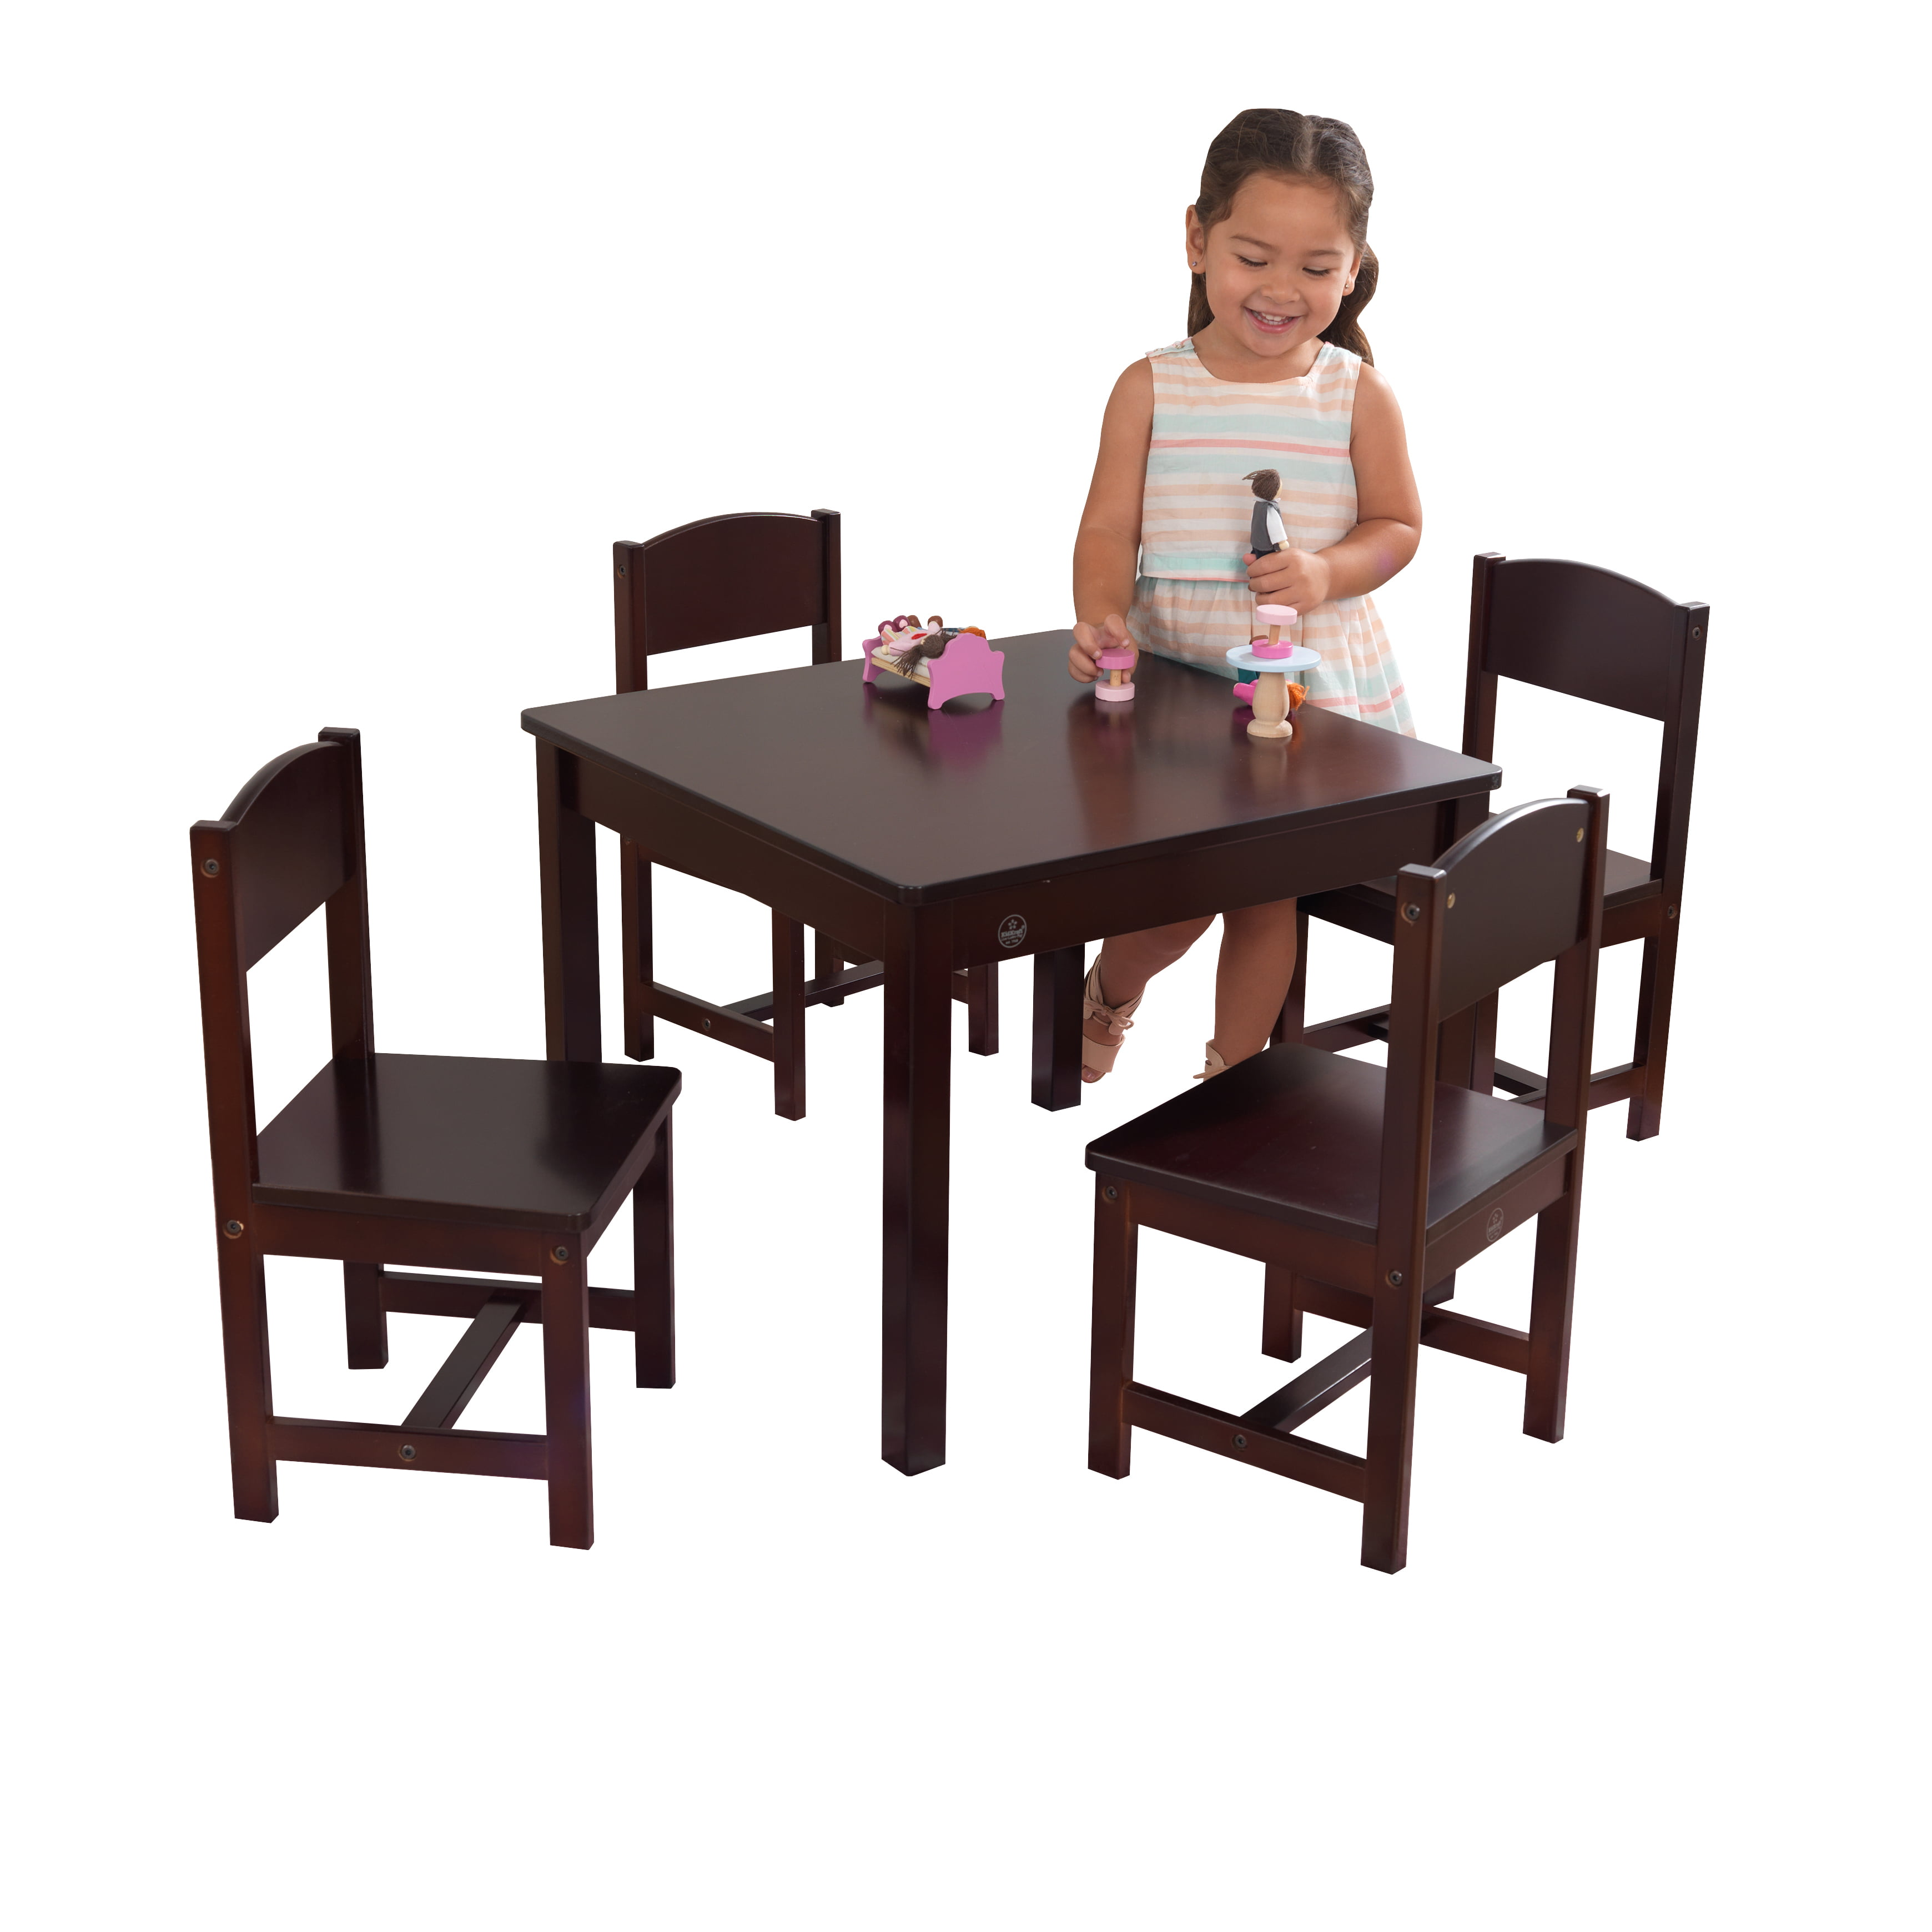 Kids Table And Chairs Set Espresso: KidKraft Farmhouse Table & 4 Chair Set